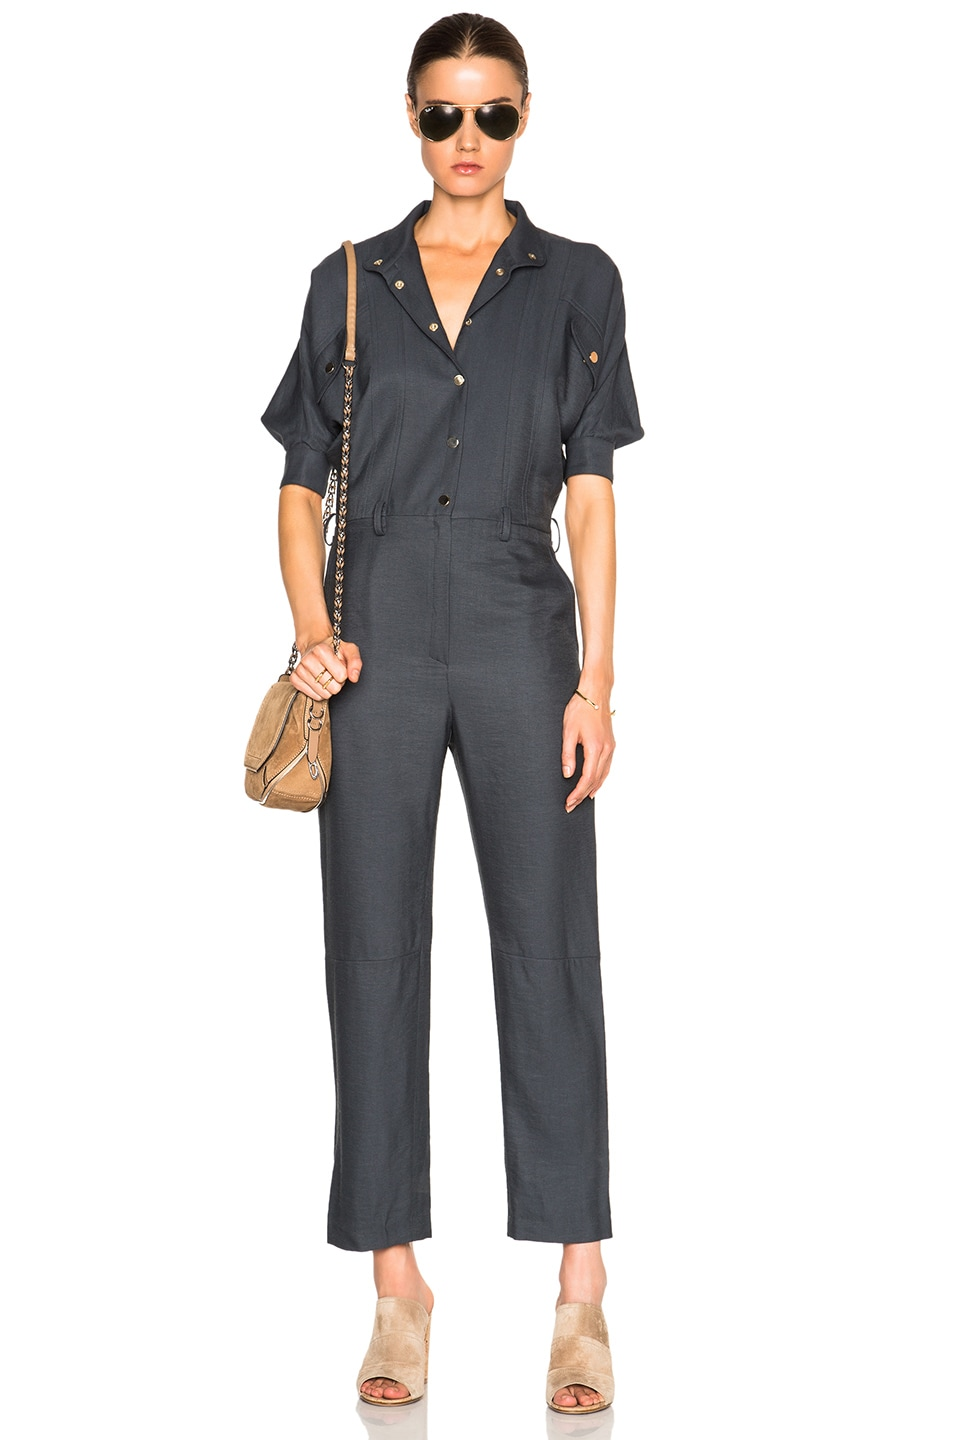 Image 5 of Carolina Ritz Charles 85 Jumpsuit in Blue